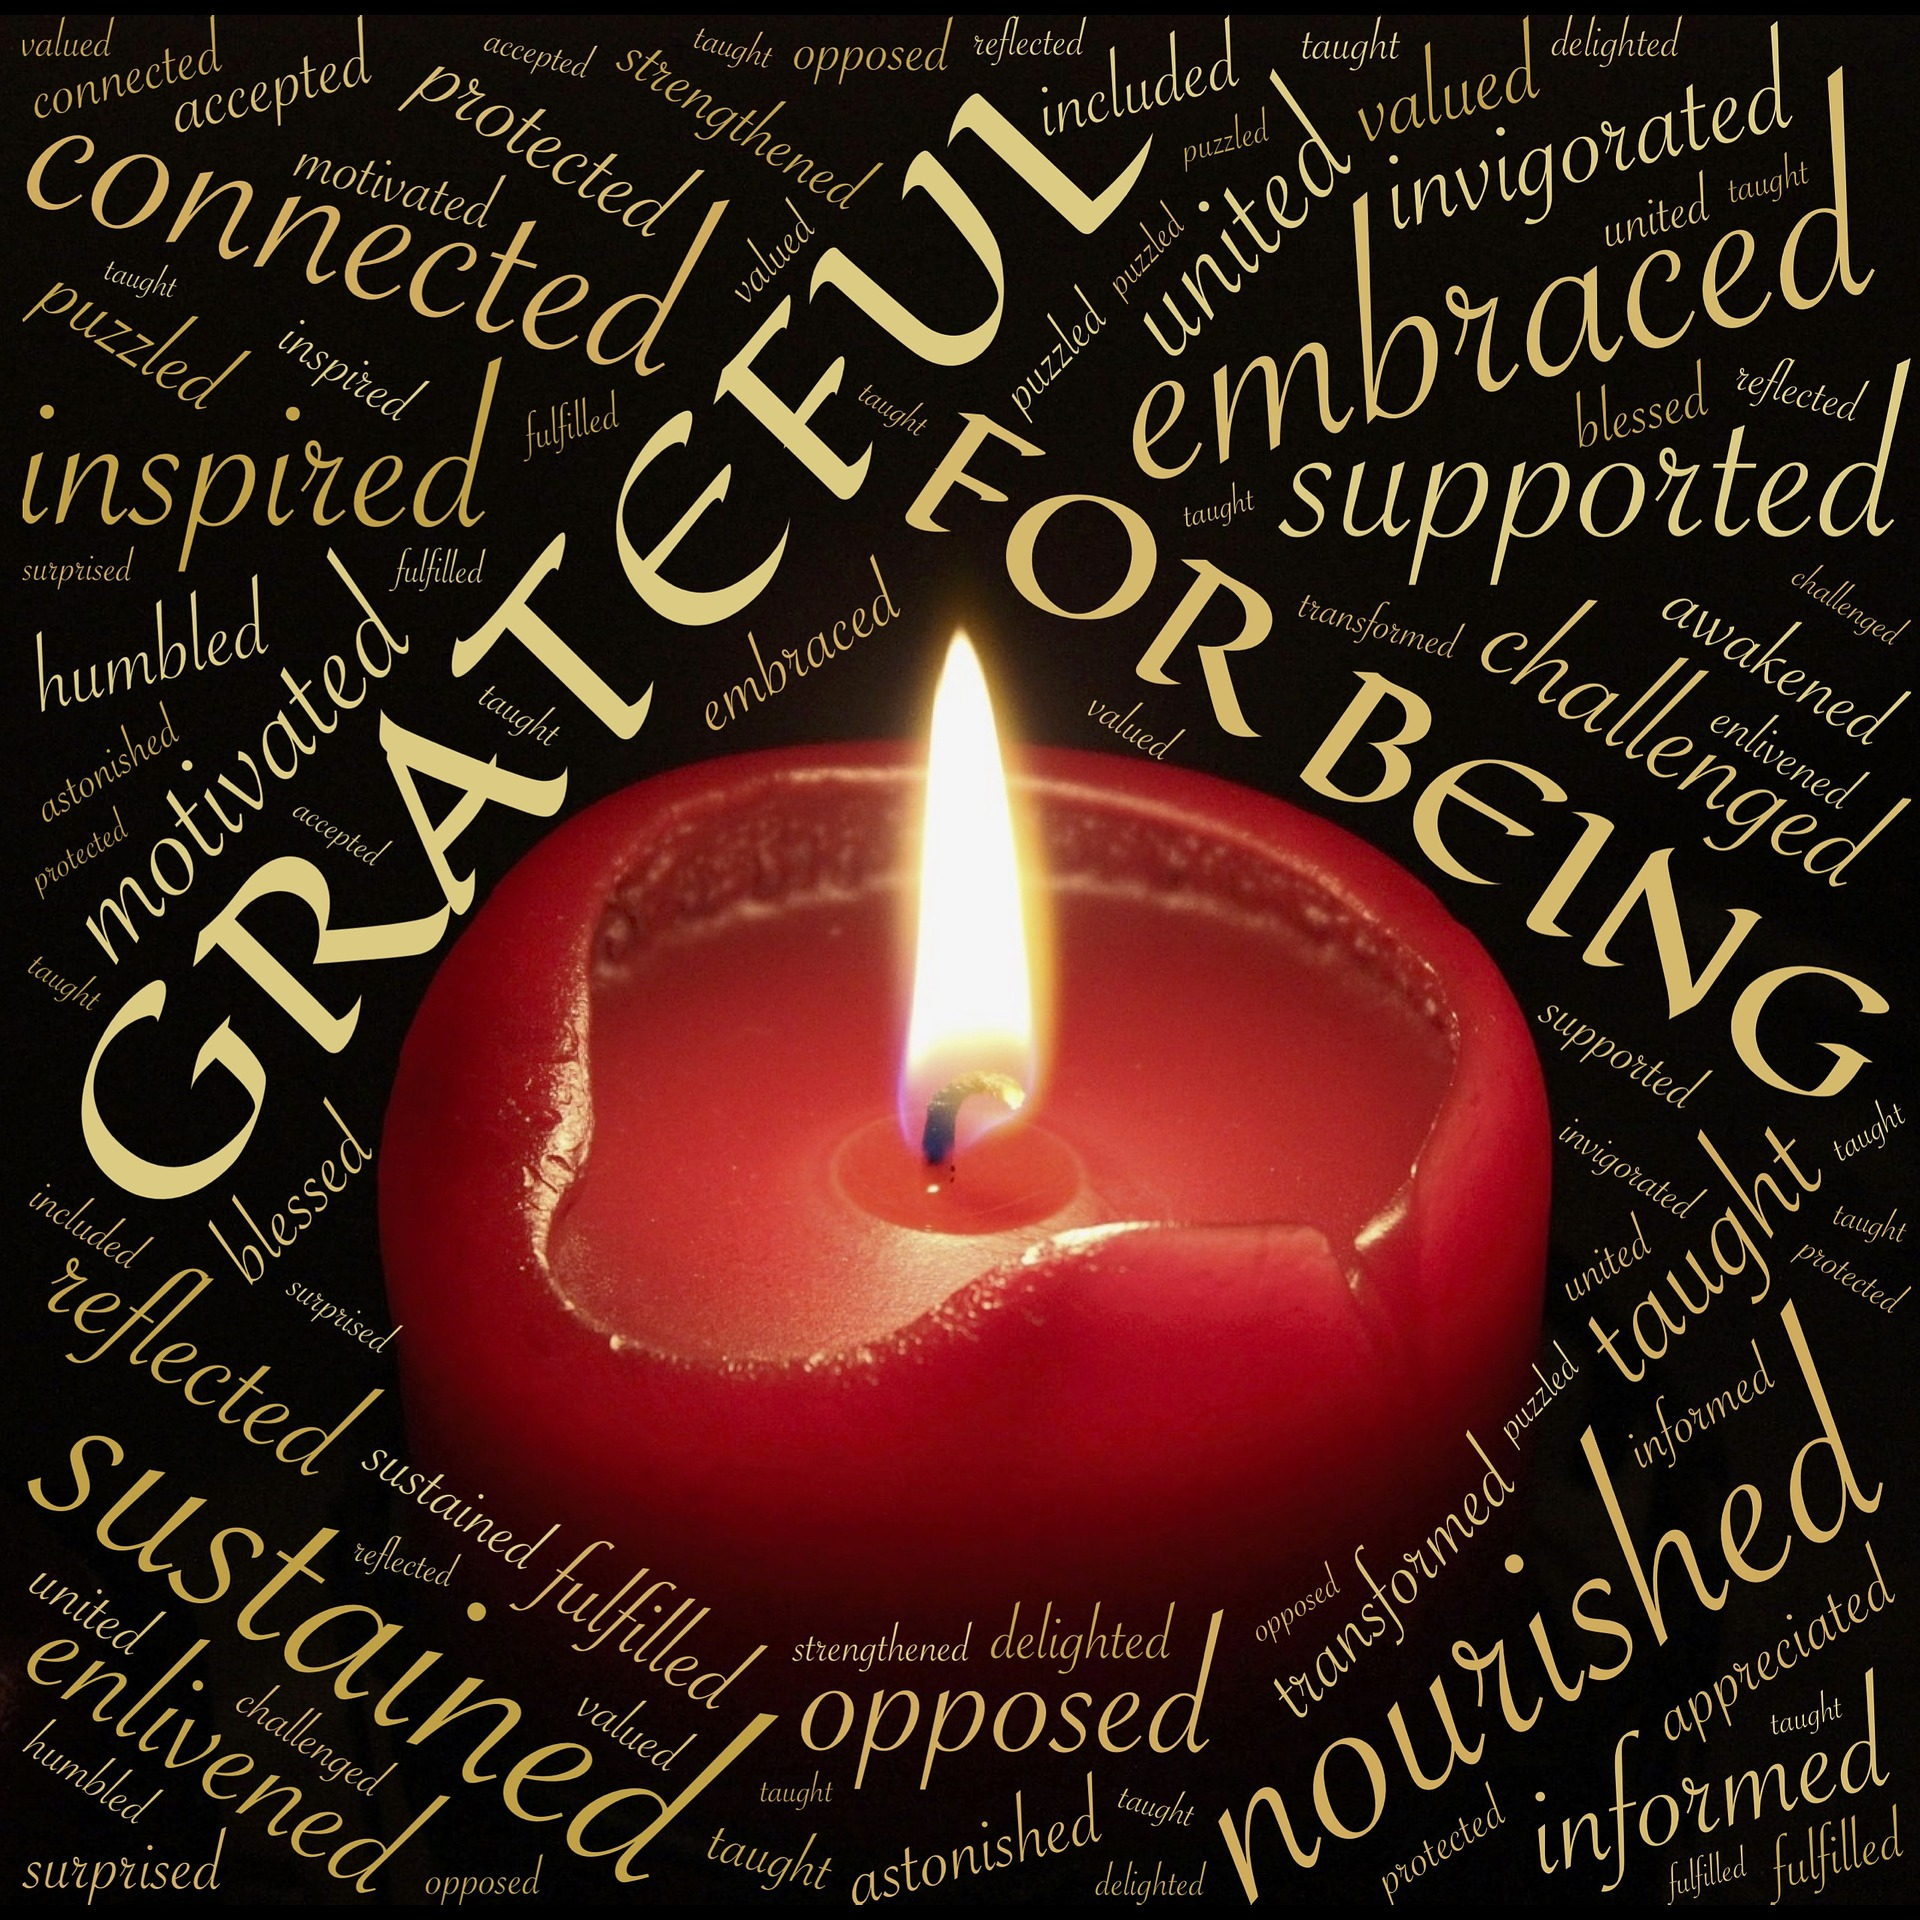 Practice Gratitude La Luz Therapy www.laluztherapy.com reiki meditation wellness vocal sound therapy Lucy Toppetta